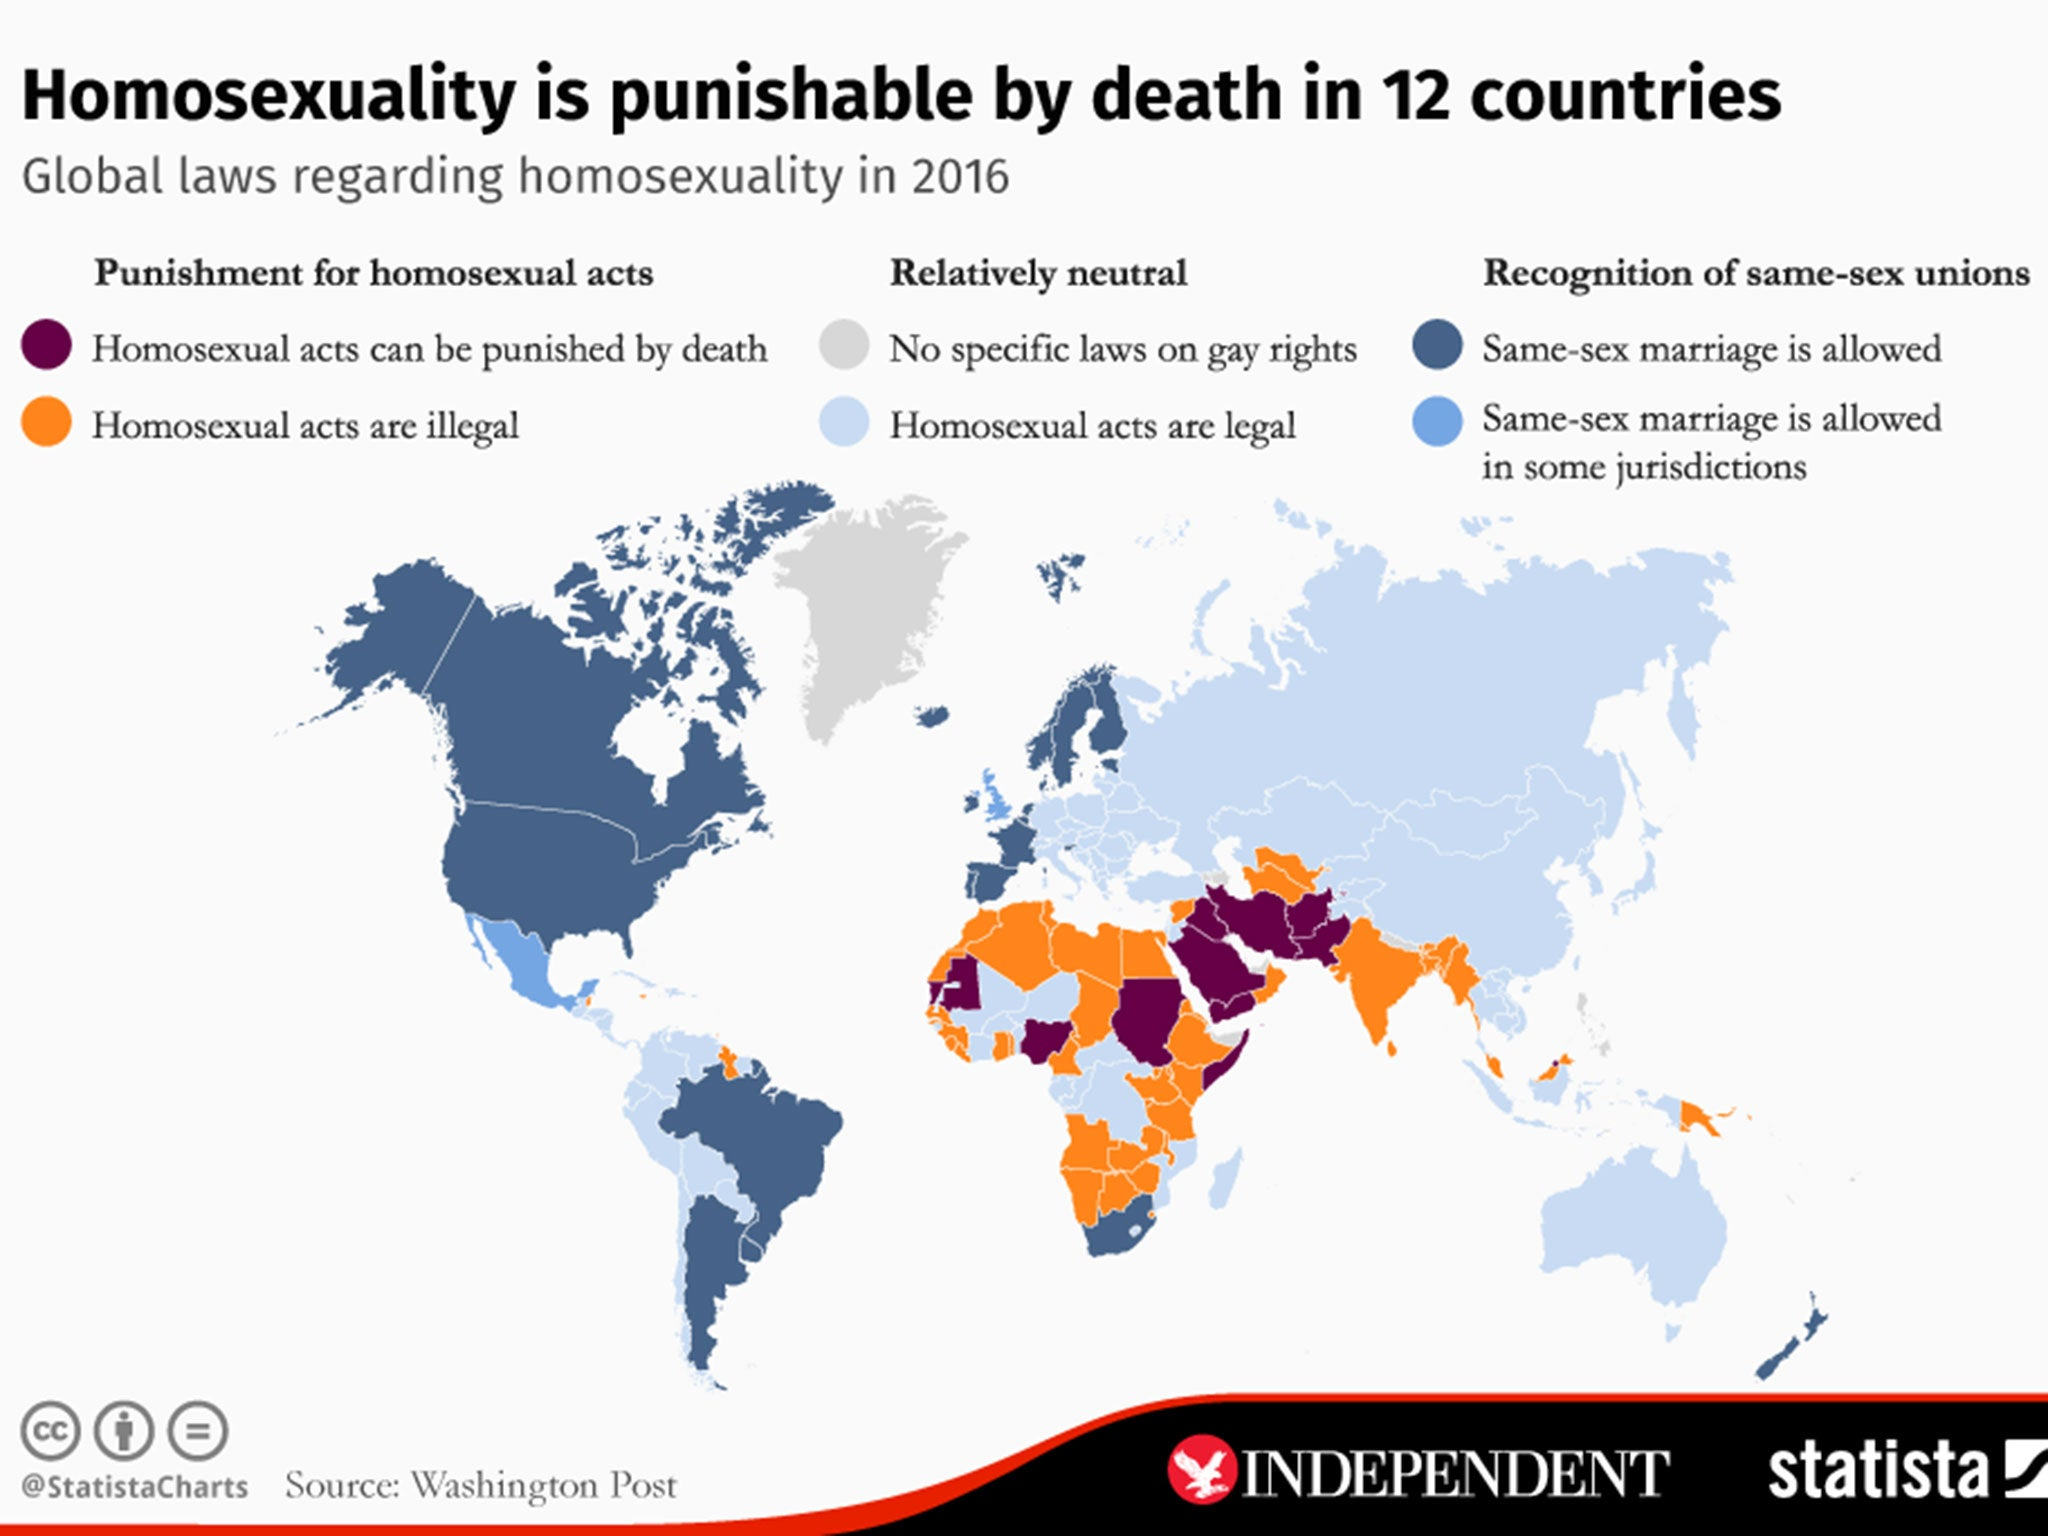 LGBT relationships are illegal in 74 countries, research ... on map of europe, map of oceans, map of canada, map of united kingdom, map of hemispheres, map of world, map of africa, map of continents, map of germany, map of philippines, map of romania, map of states, map of greece, map of bangladesh, map of mexico, map of brazil, map of asia, map of country, map of italy,